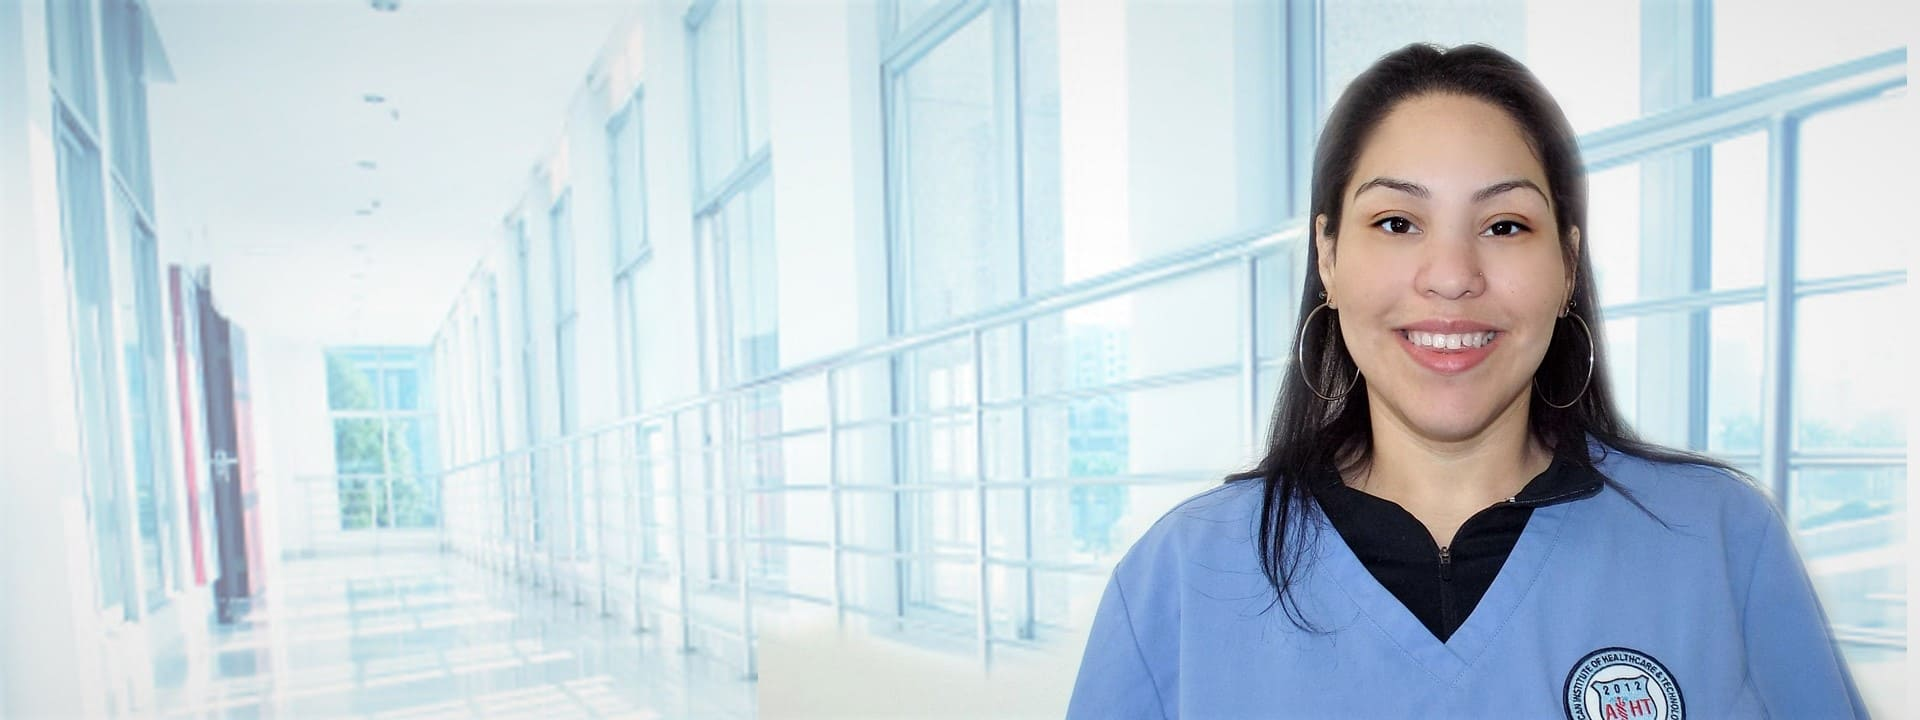 Medical Assistant & HIPAA Specialist training program